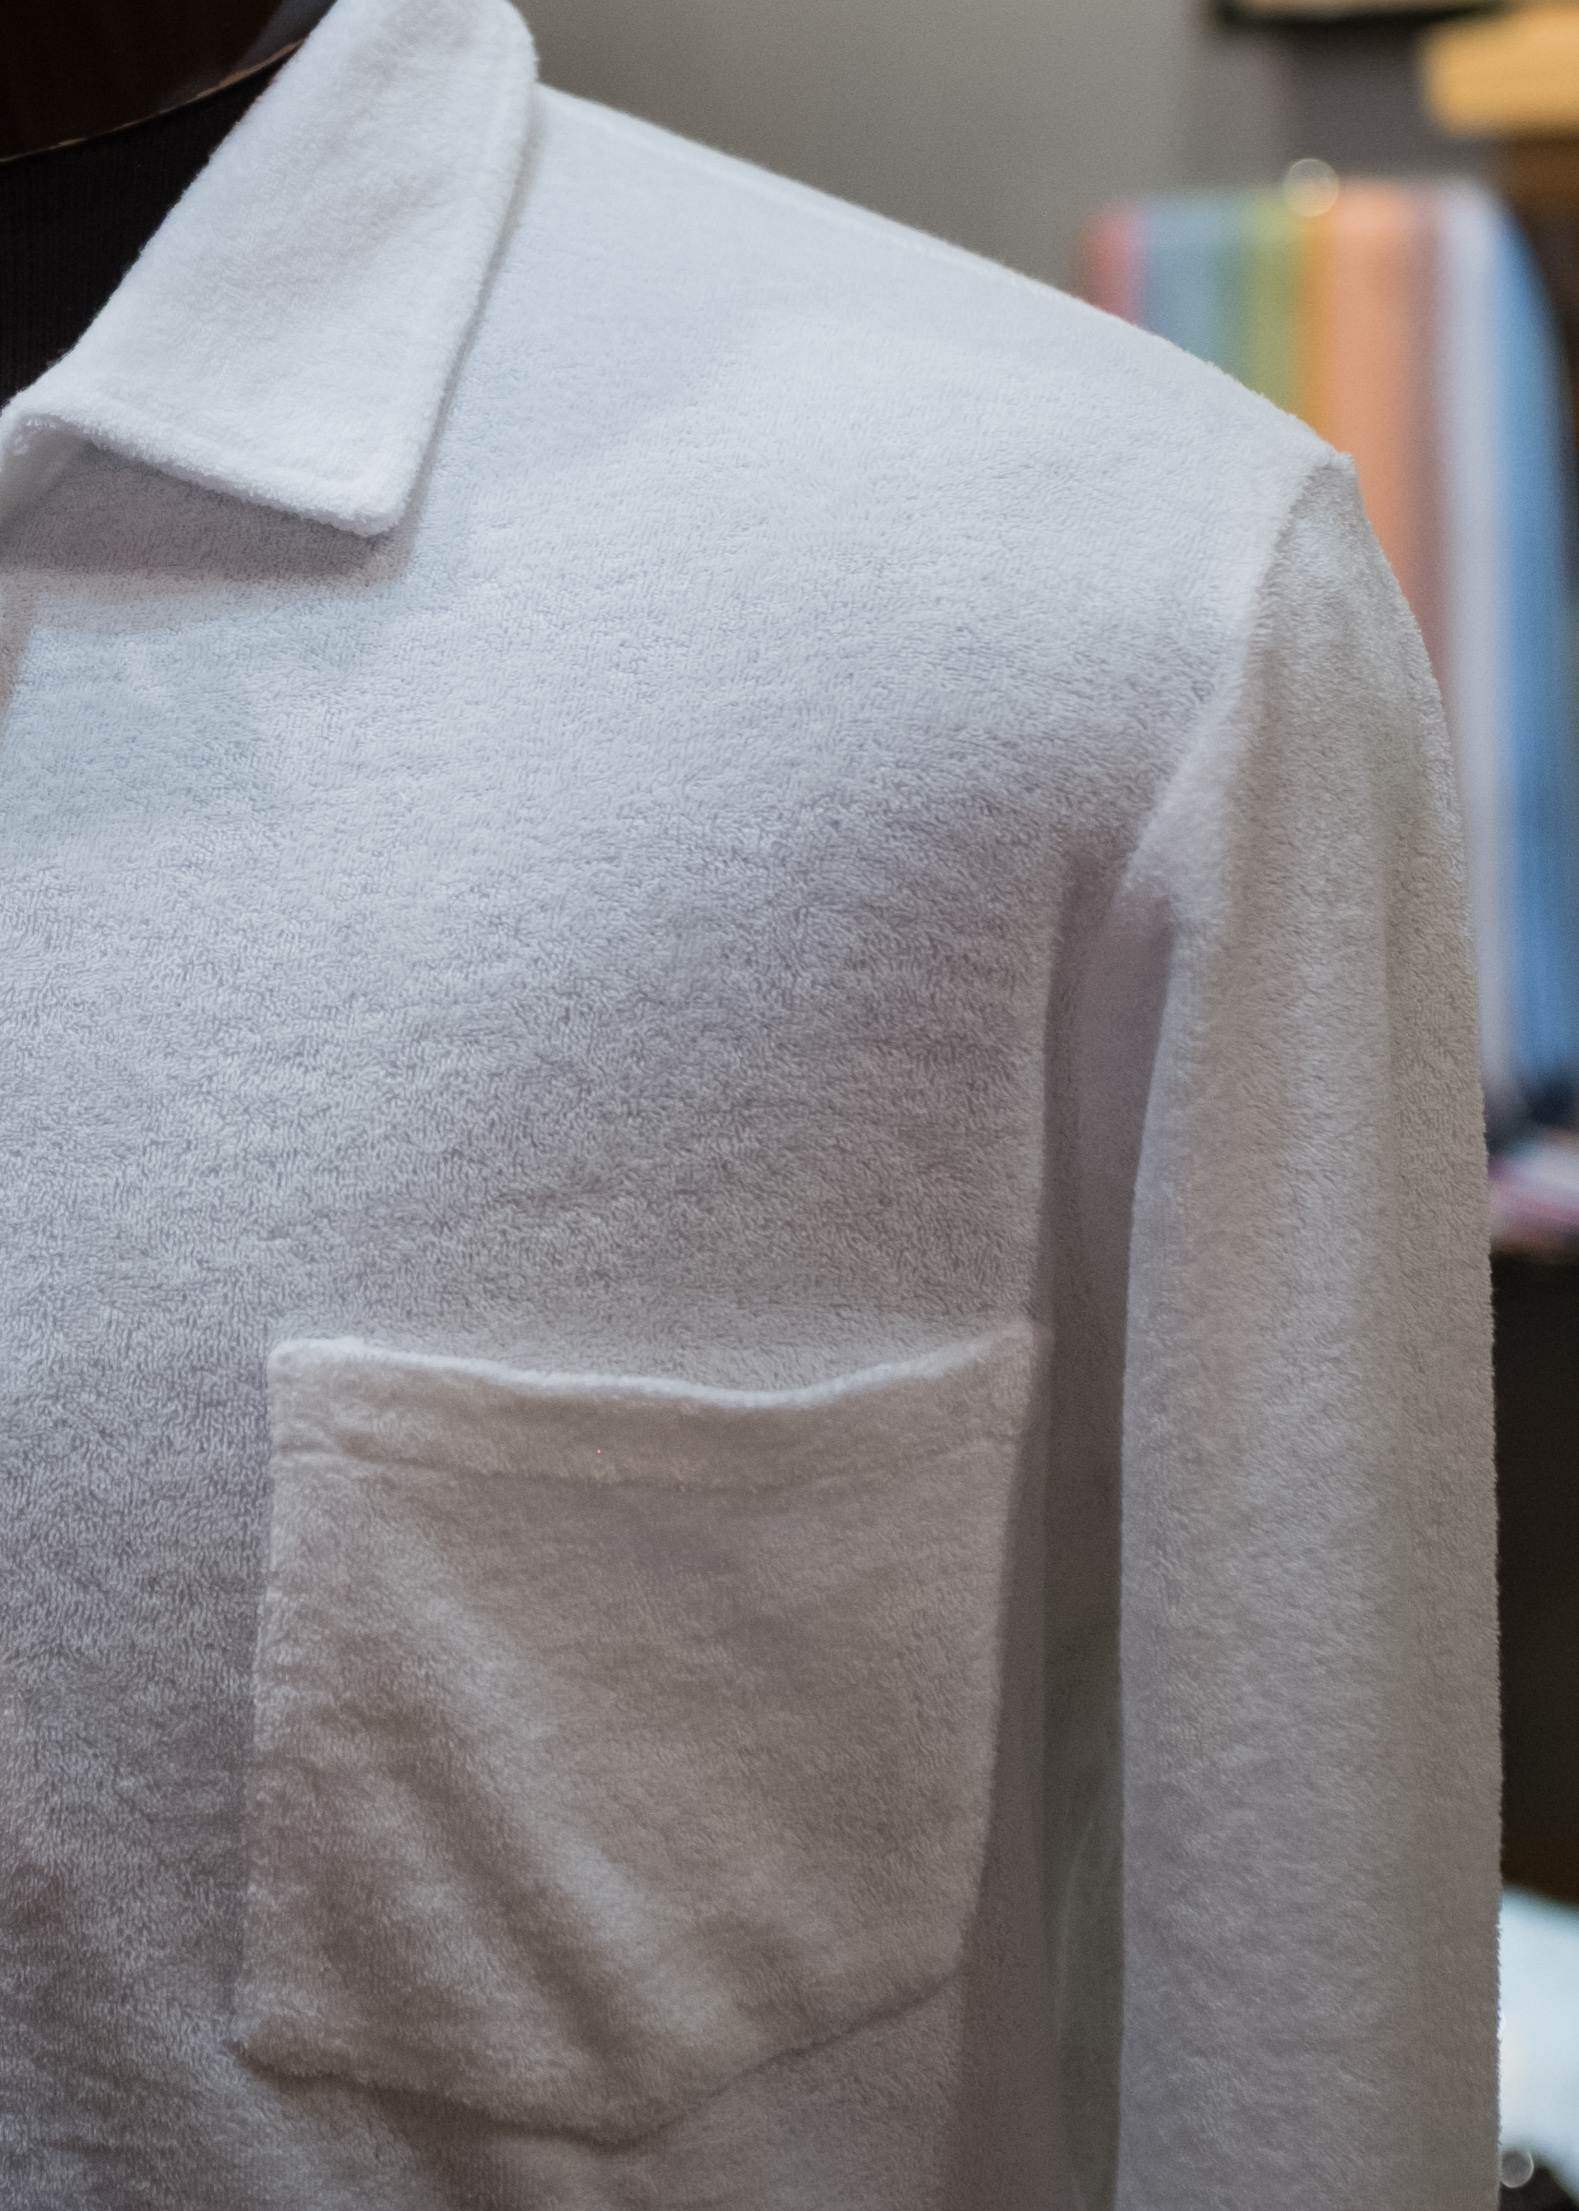 Up close with our exquisitely fine terry cloth.